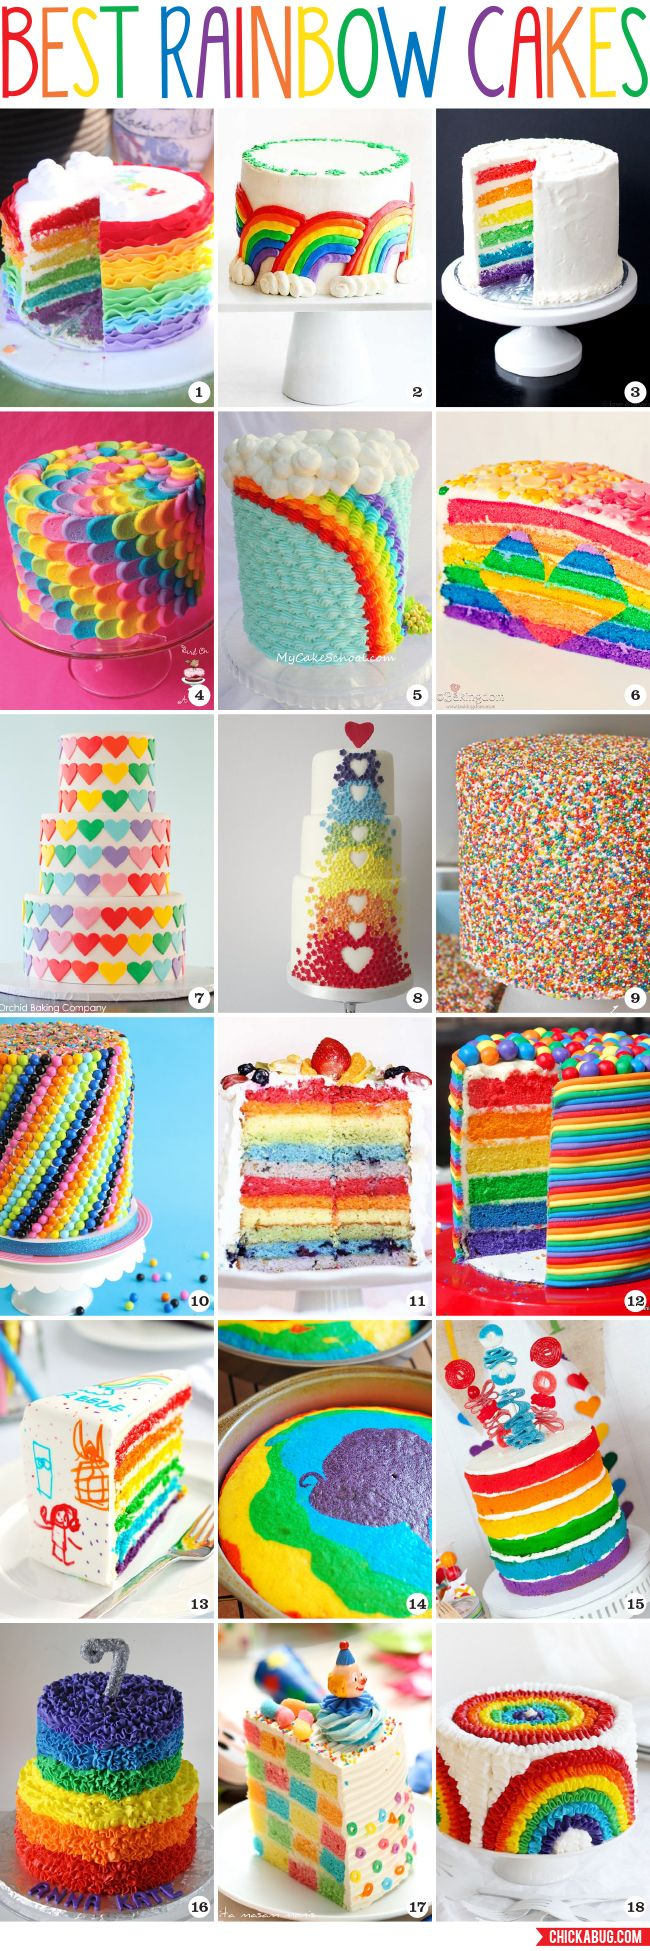 Everyone loves a rainbow cake! Here are a ton of rainbow cake recipes & decorating ideas.